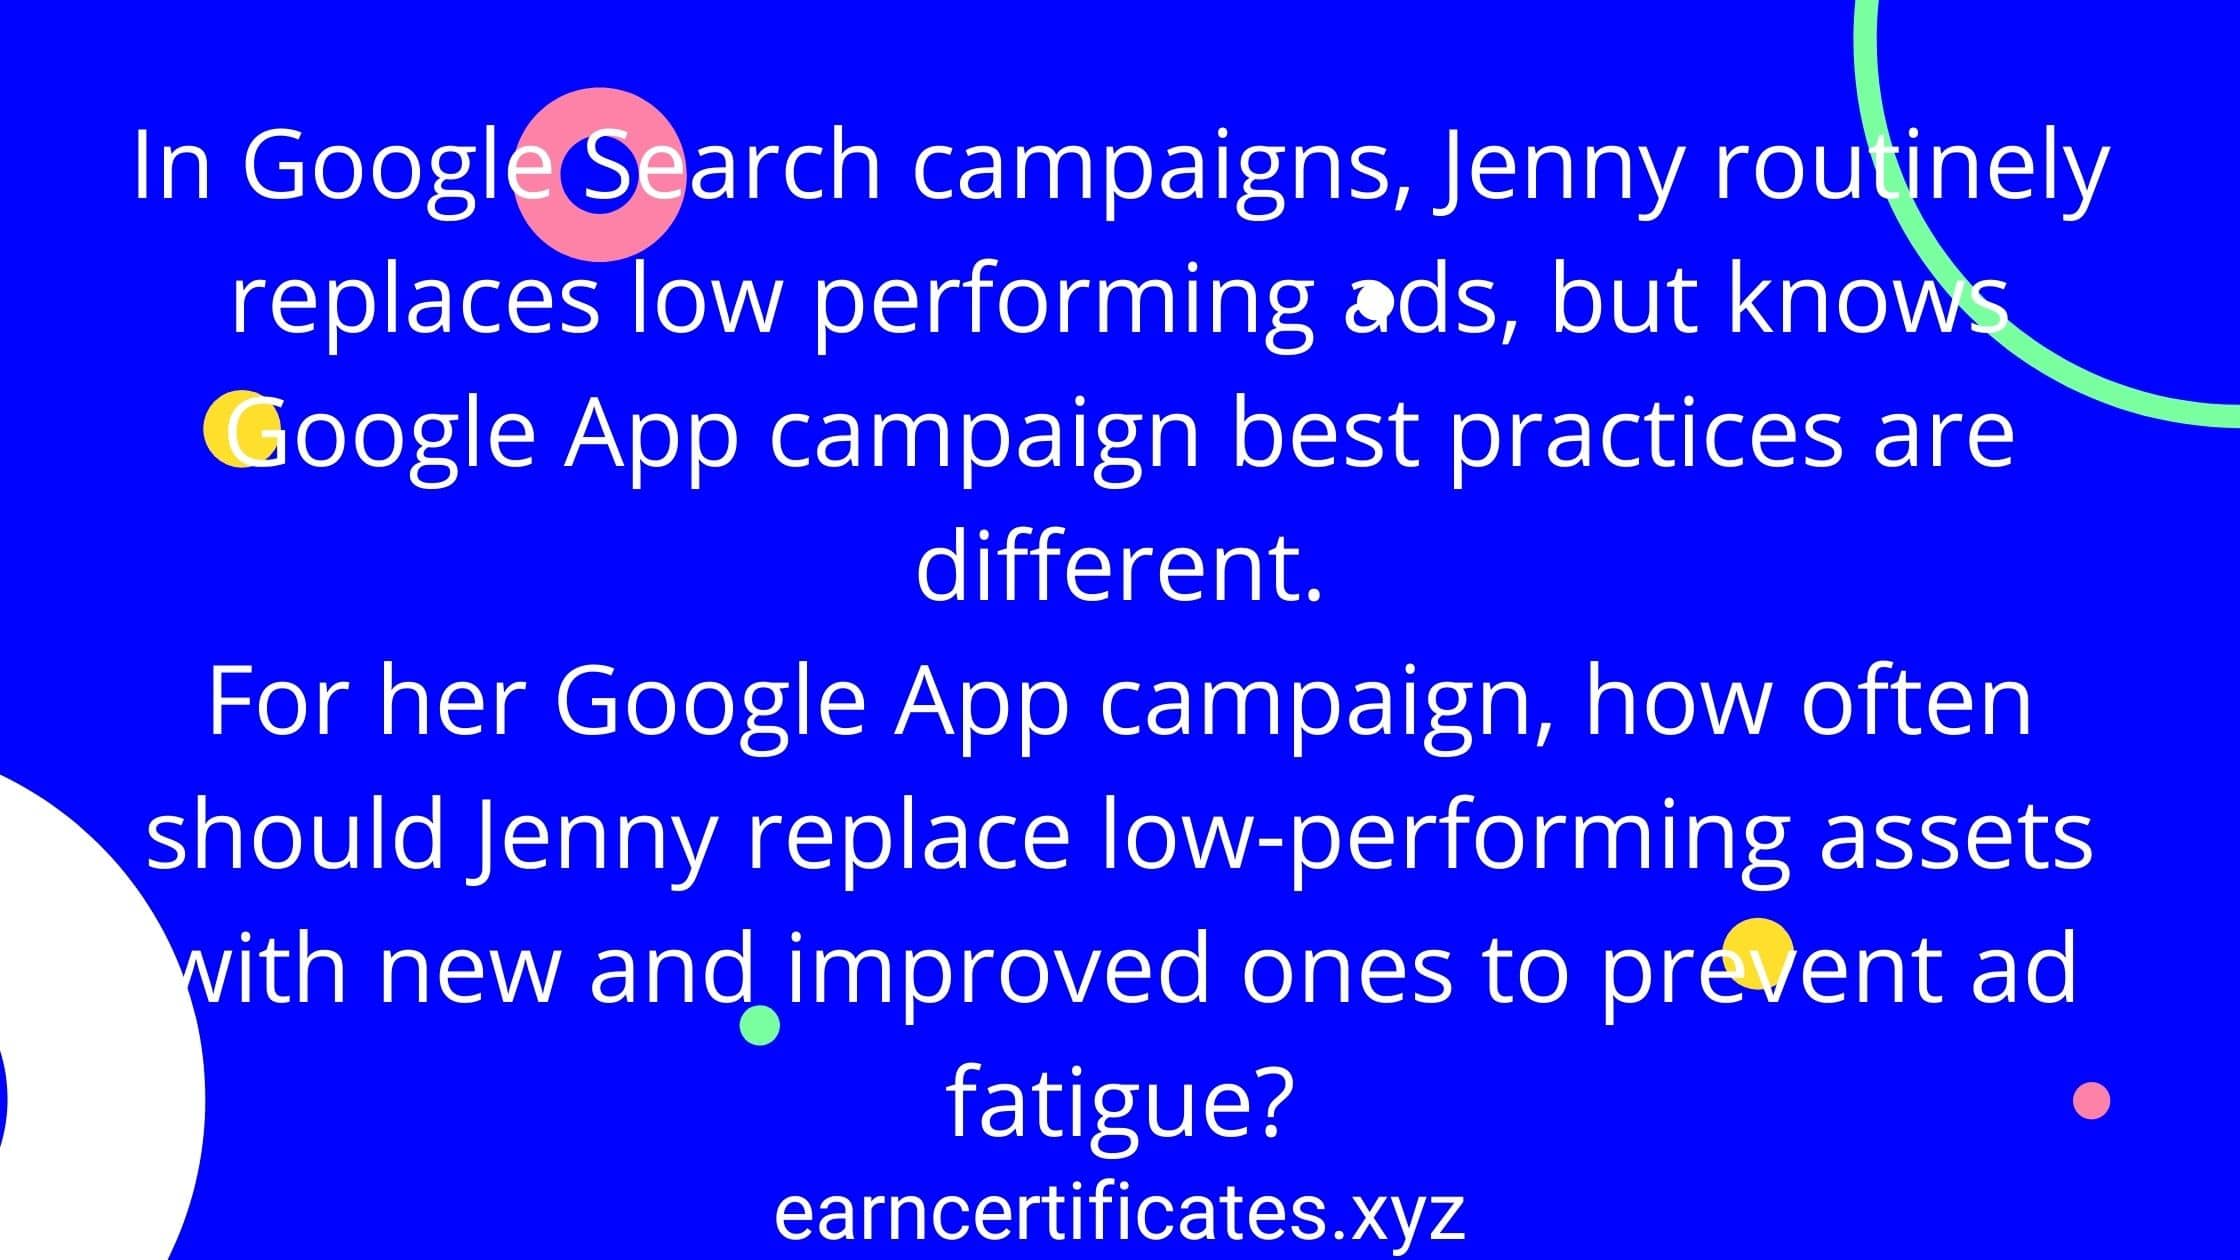 In Google Search campaigns, Jenny routinely replaces low performing ads, but knows Google App campaign best practices are different. For her Google App campaign, how often should Jenny replace low-performing assets with new and improved ones to prevent ad fatigue?